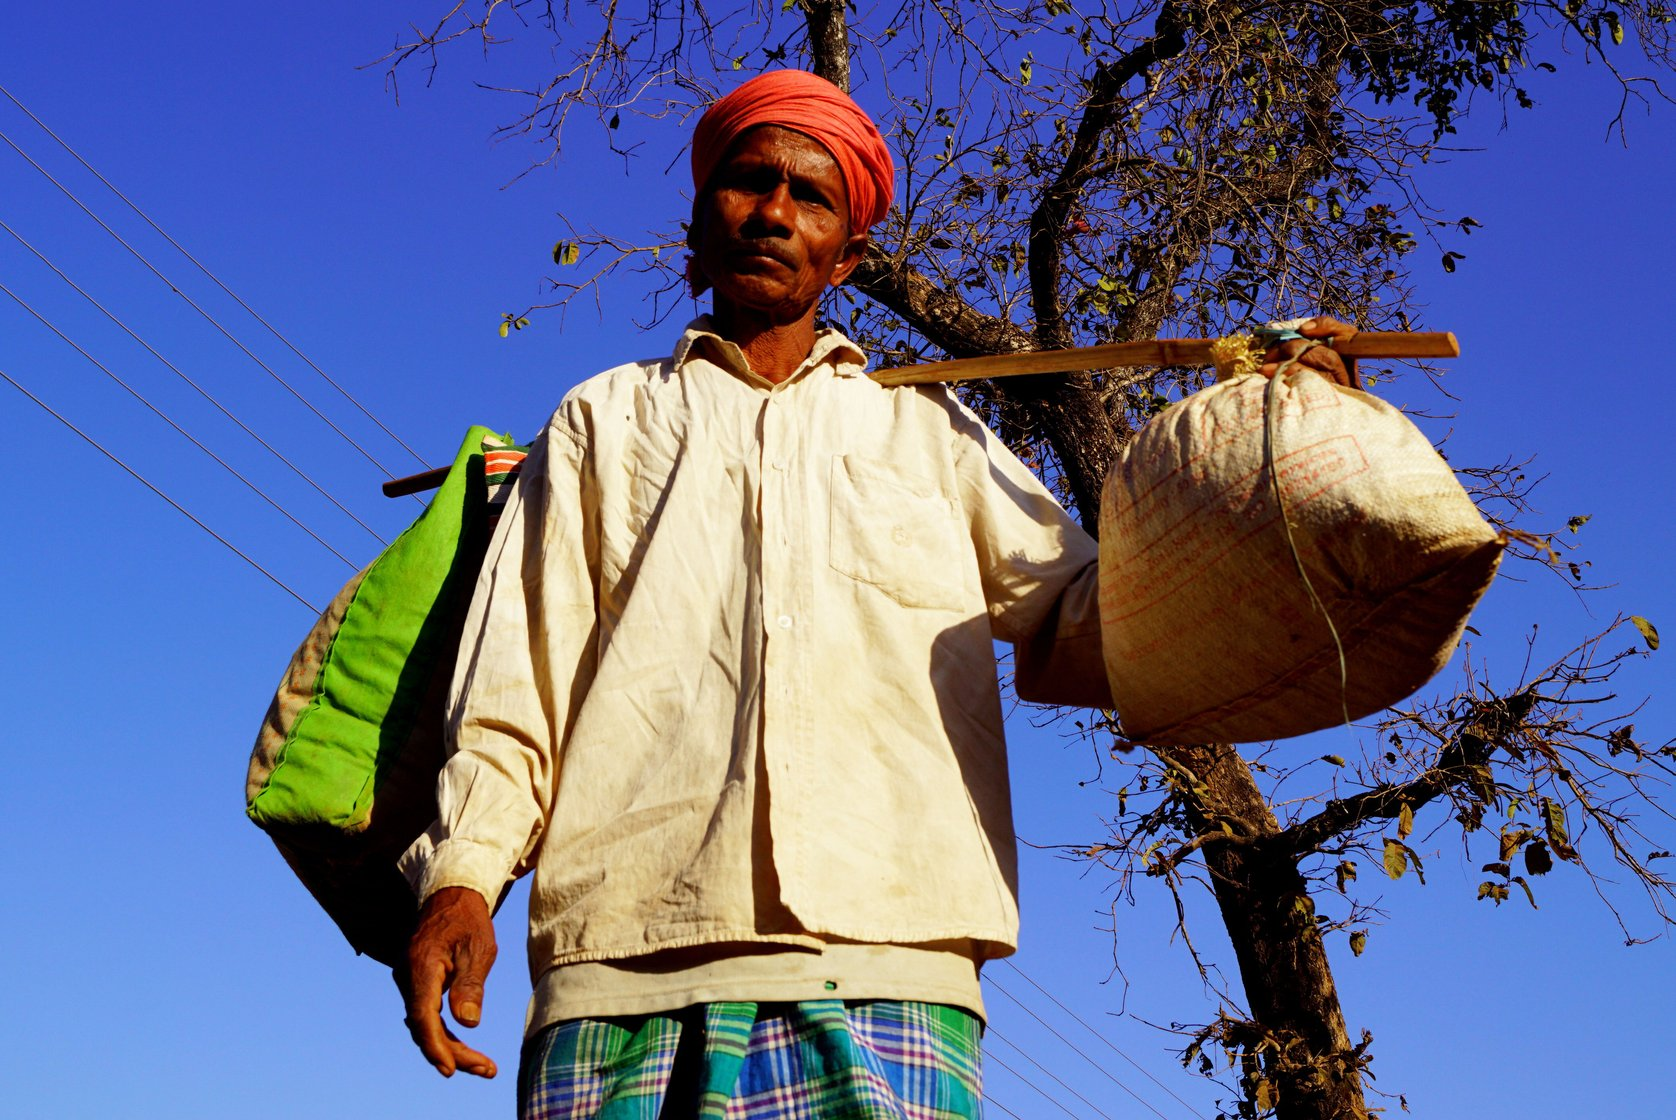 Itwaru, a farmer and farm labourer from nearby Kohcur village, is here to purchase mahua flowers and grapes to make wine